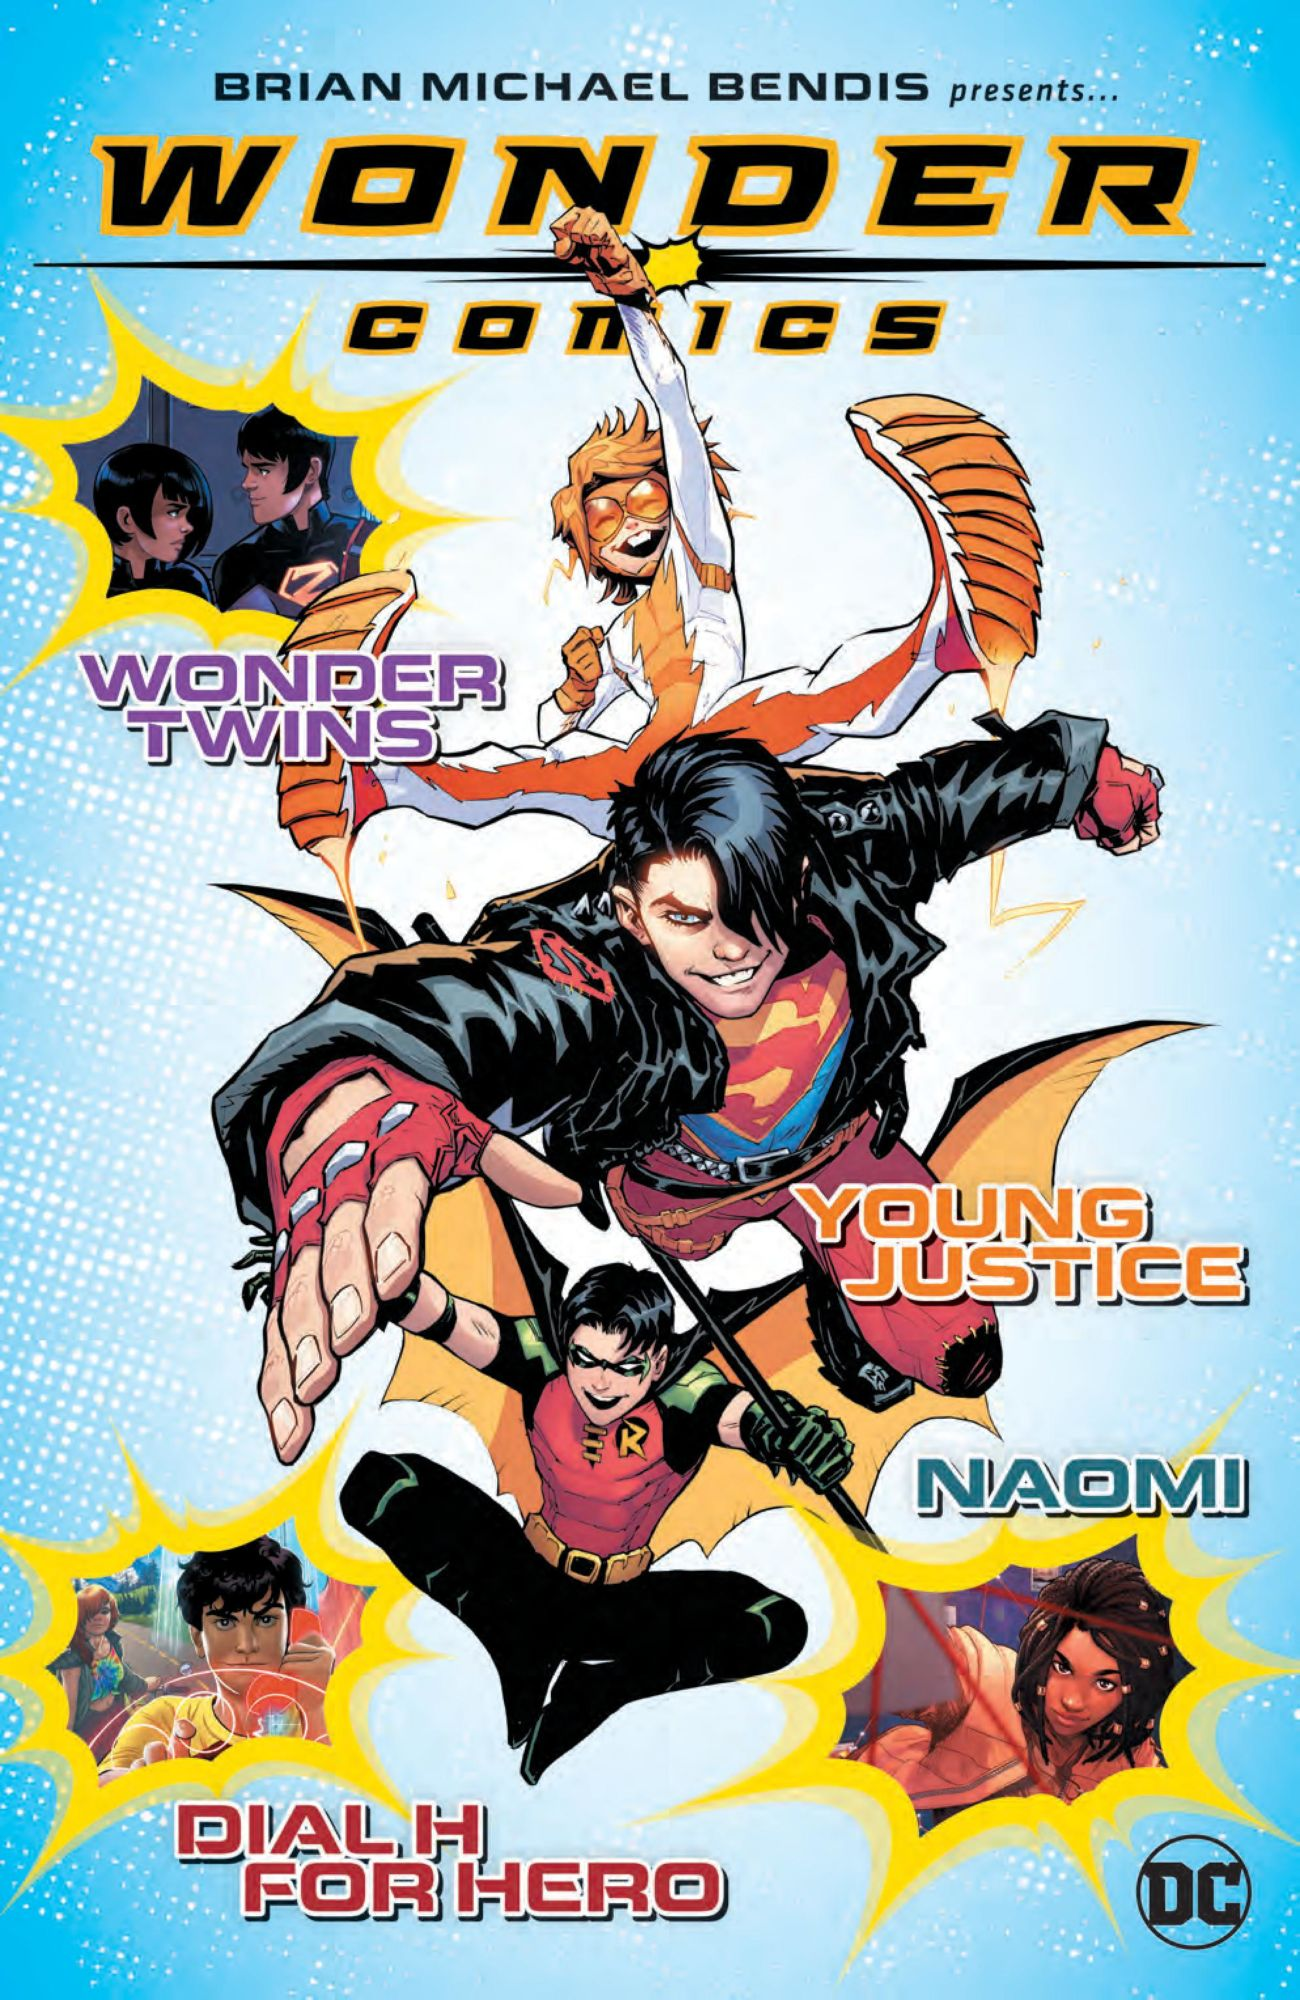 9-Page Guide to Brian Bendis' Wonder Comics - Wonder Twins, Young